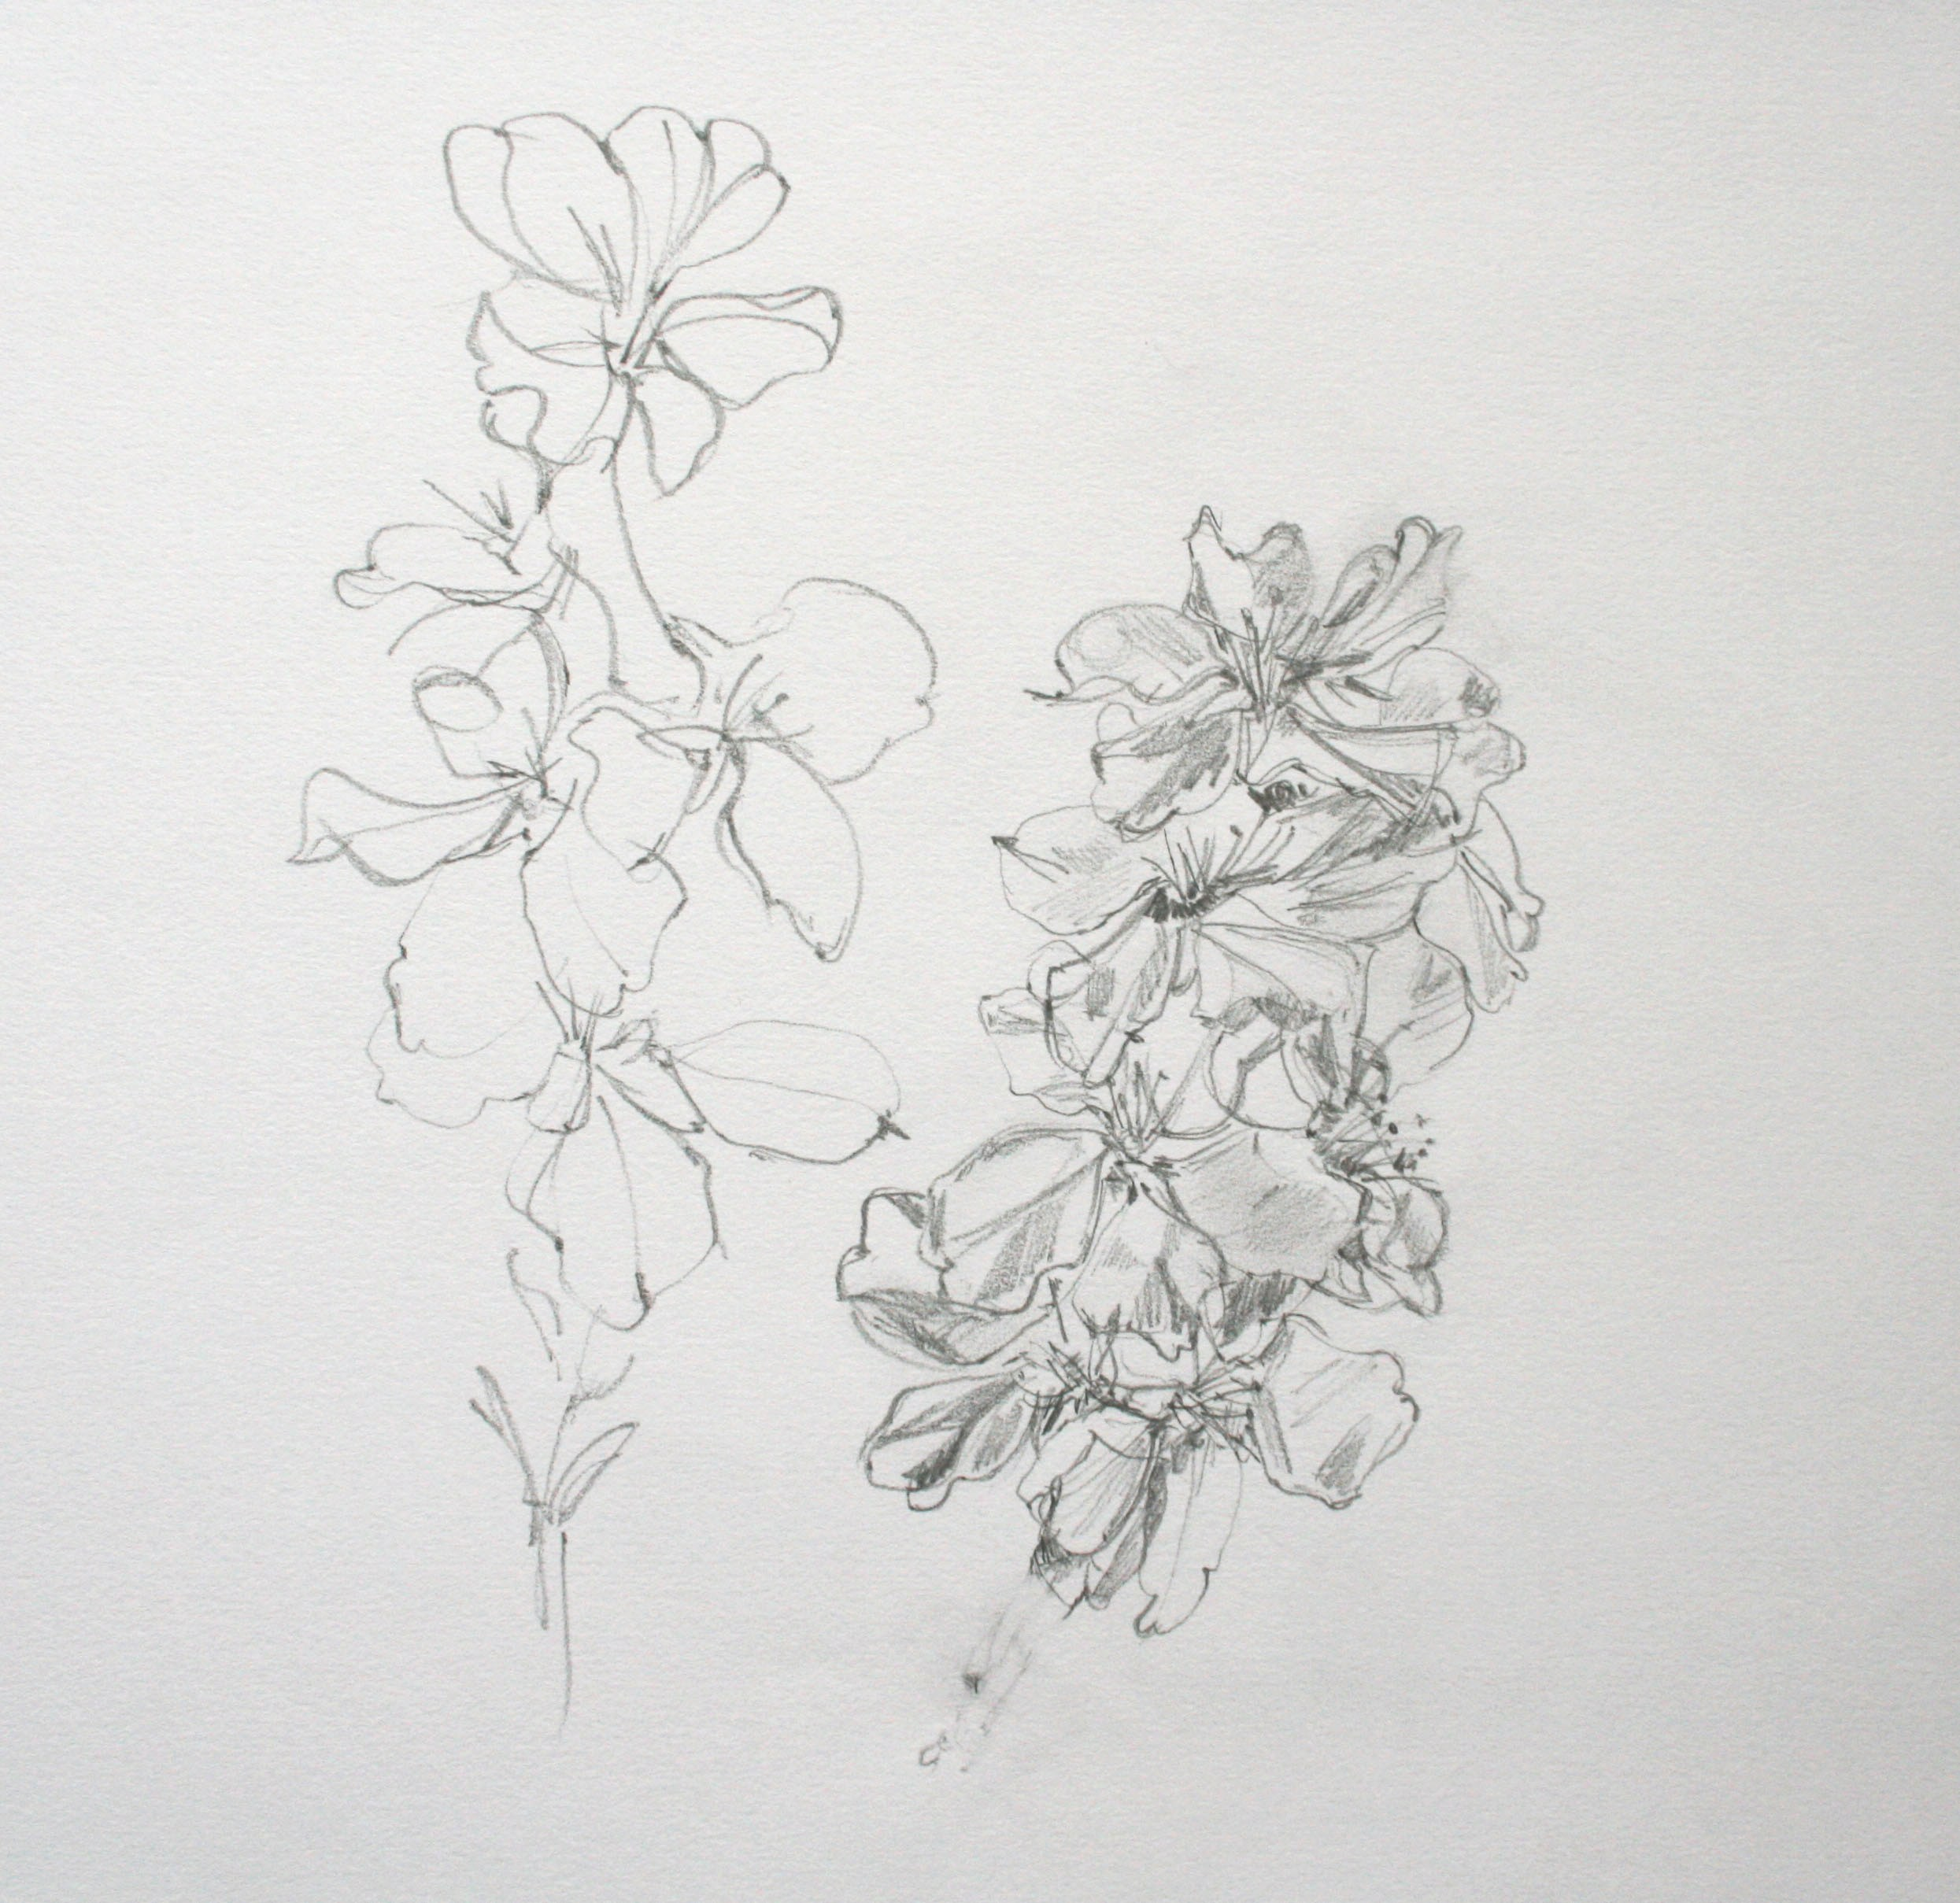 almond blossom 2, pencil on paper, 30 x 27cm, 2017 £30.00 *unavailable